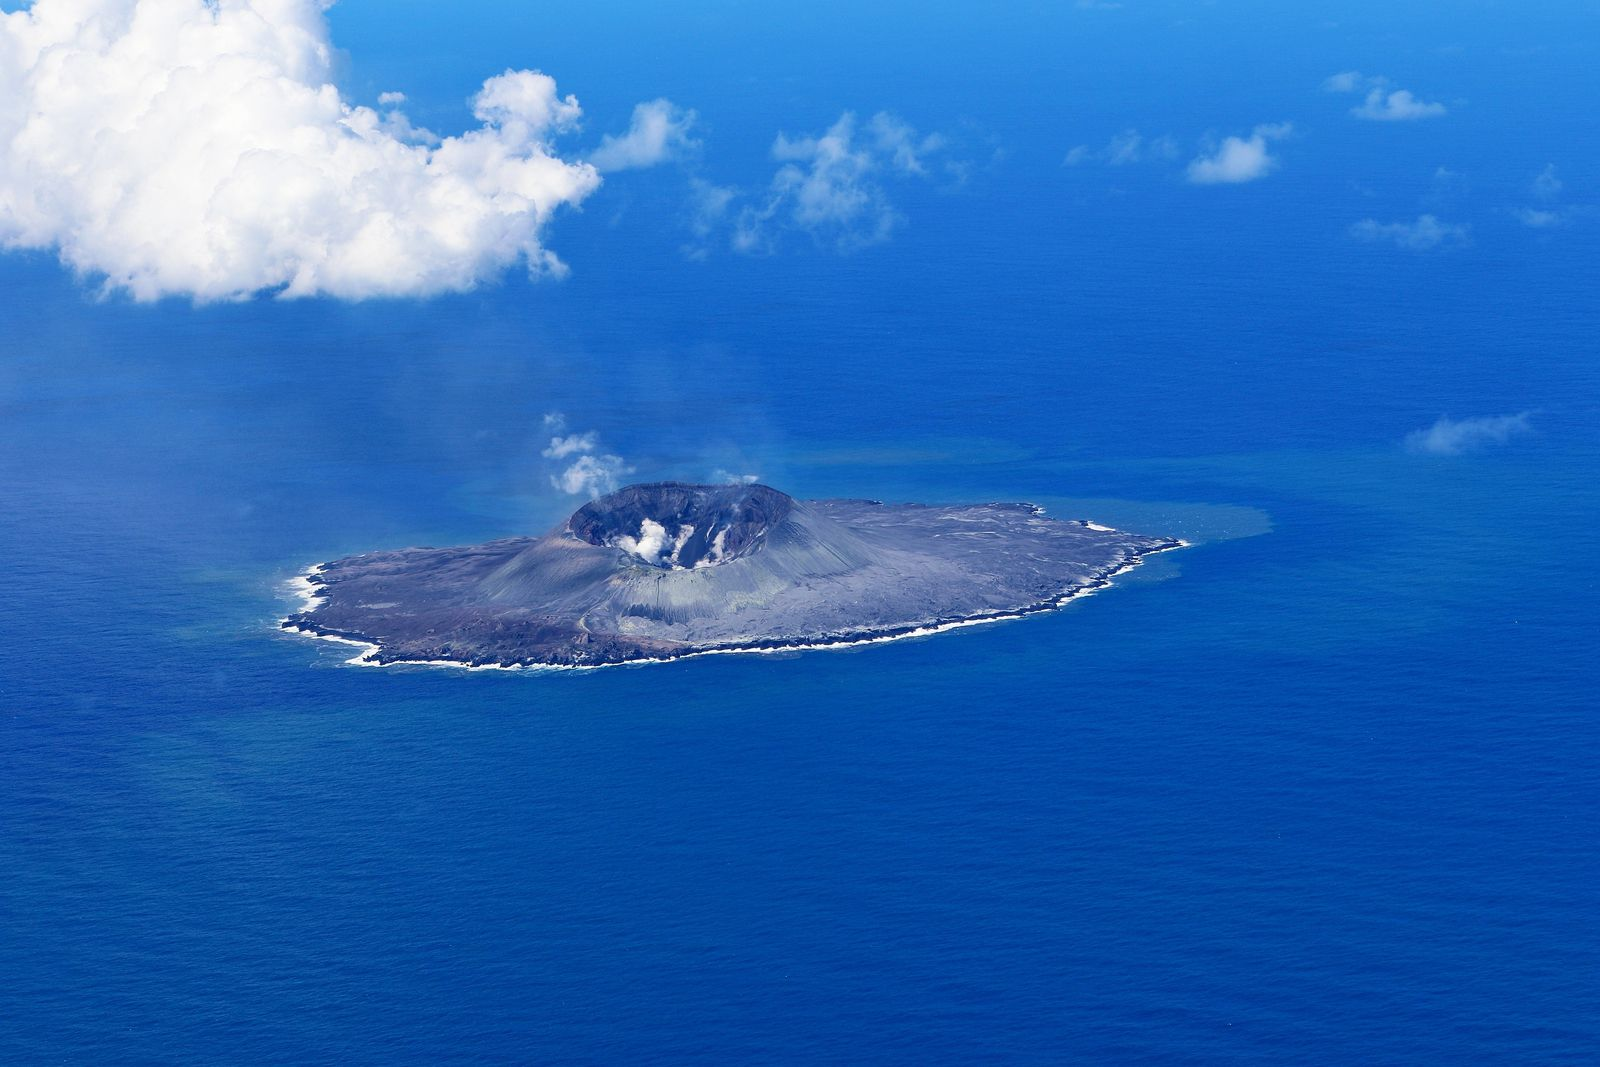 Nishinoshima - heavy ash emissions have stopped, leaving a huge crater - photo Japan Coast Guards 05.09.2020